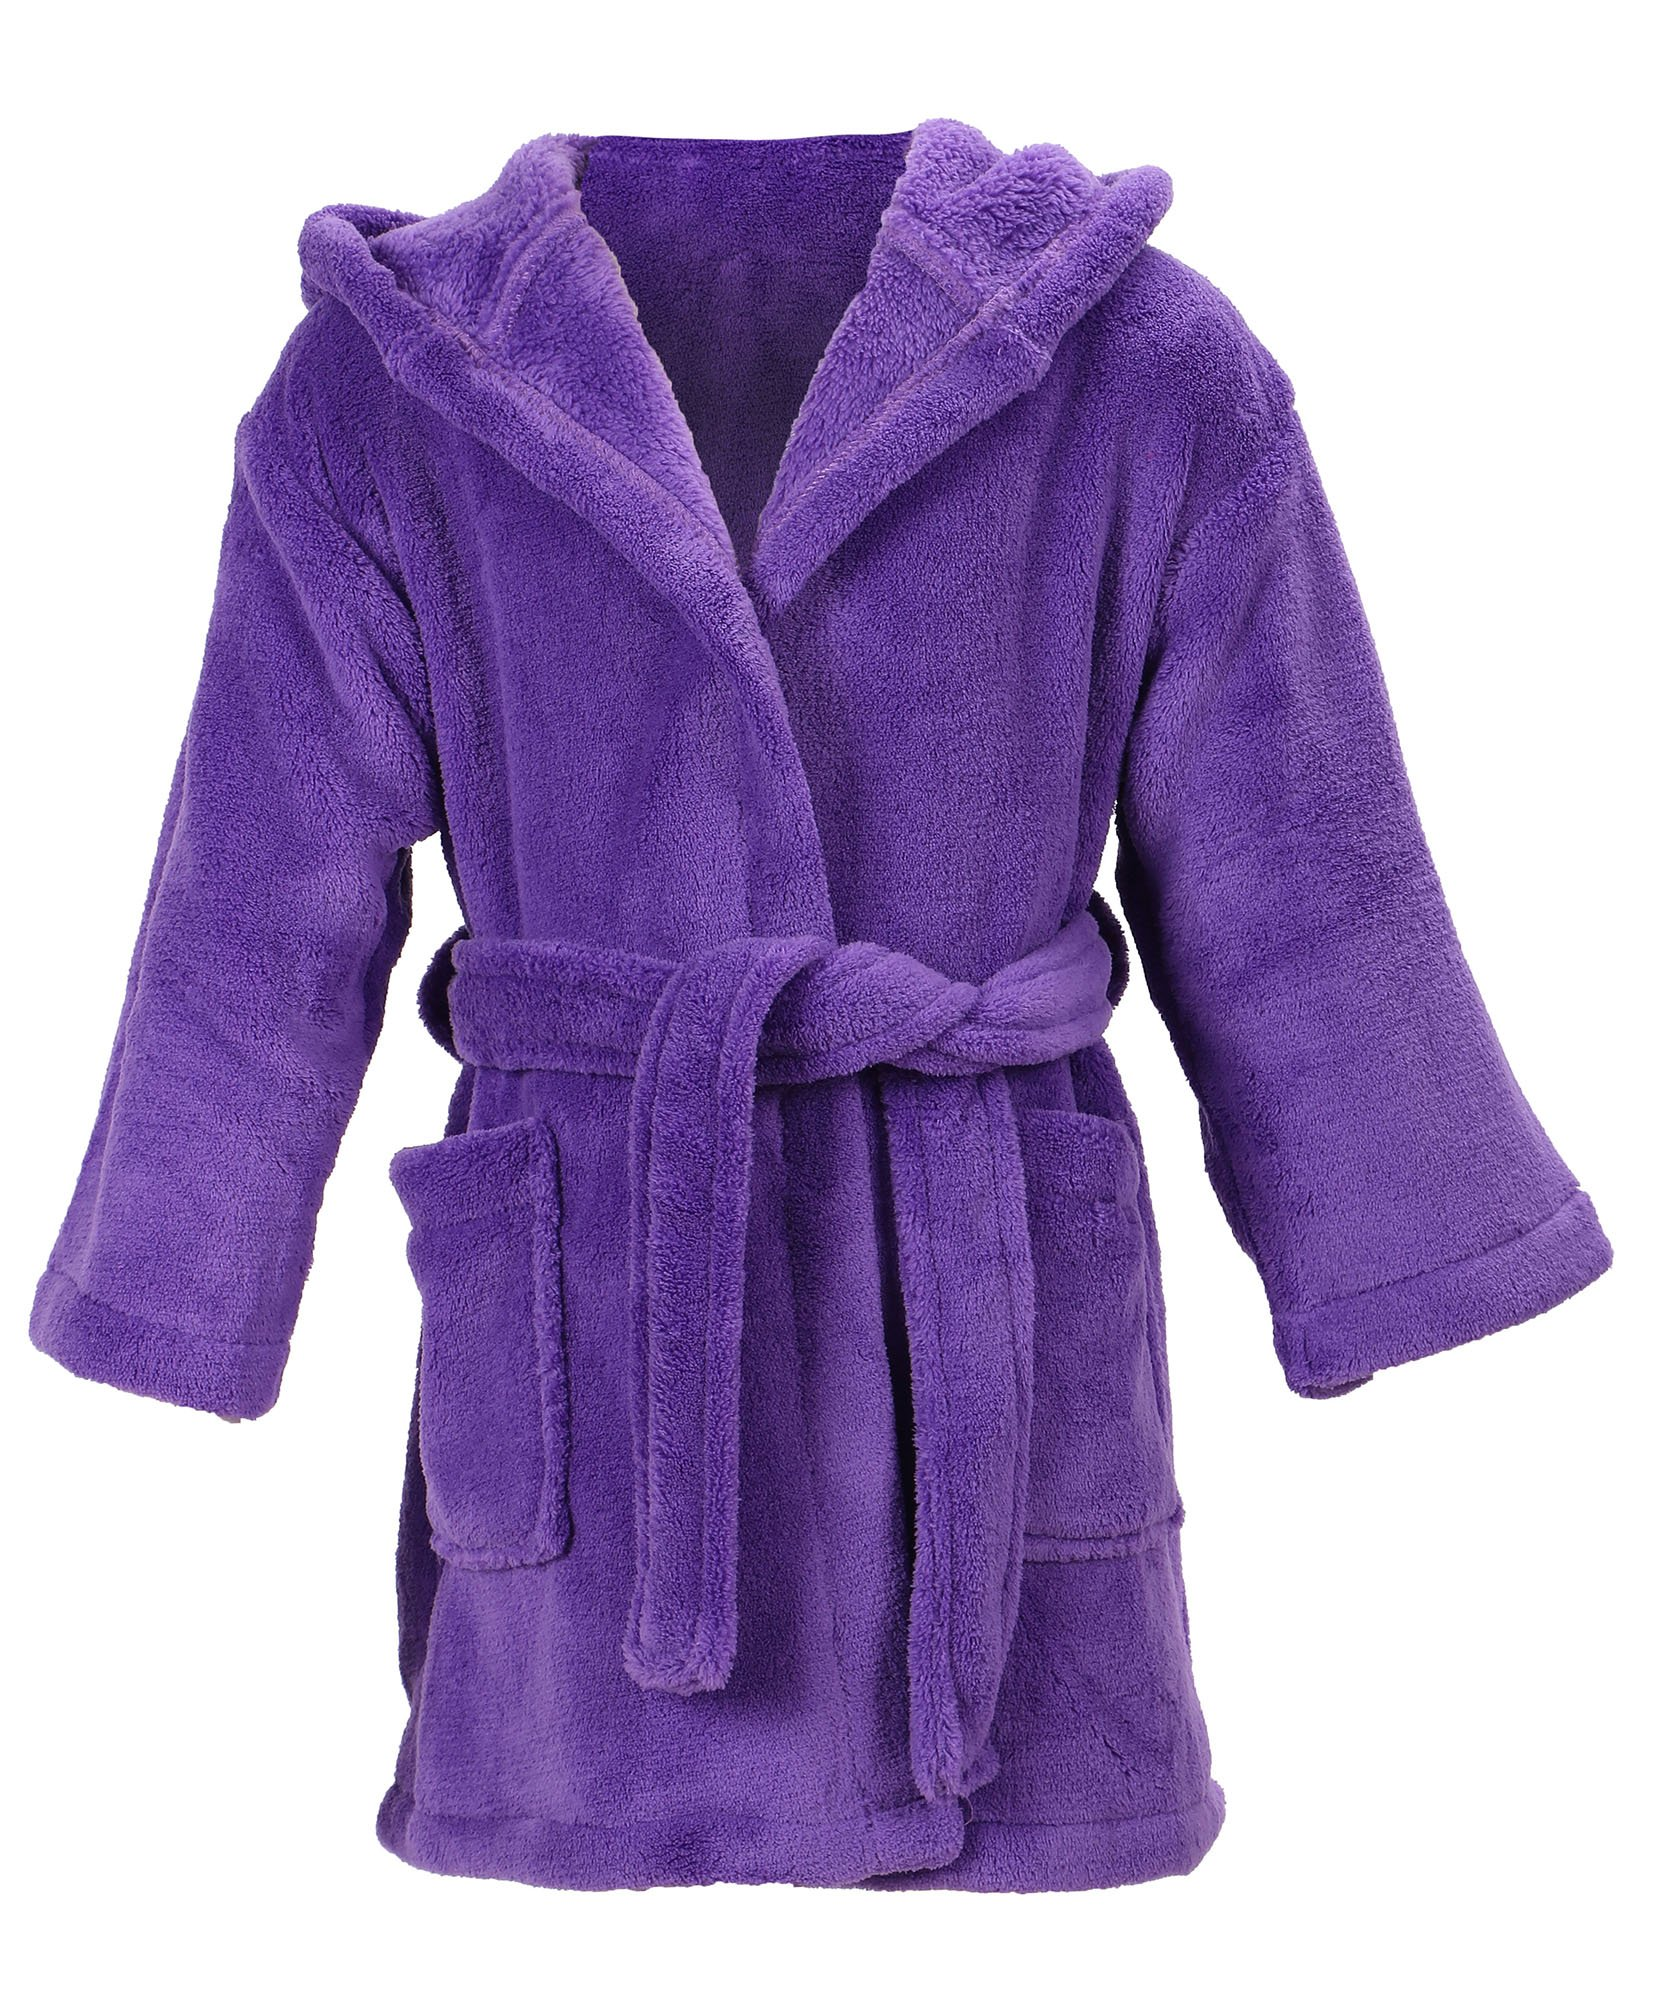 Children's Hooded Plush Velvet Outdoor Bath Robe with Pockets,Purple,M(4-6 Years)